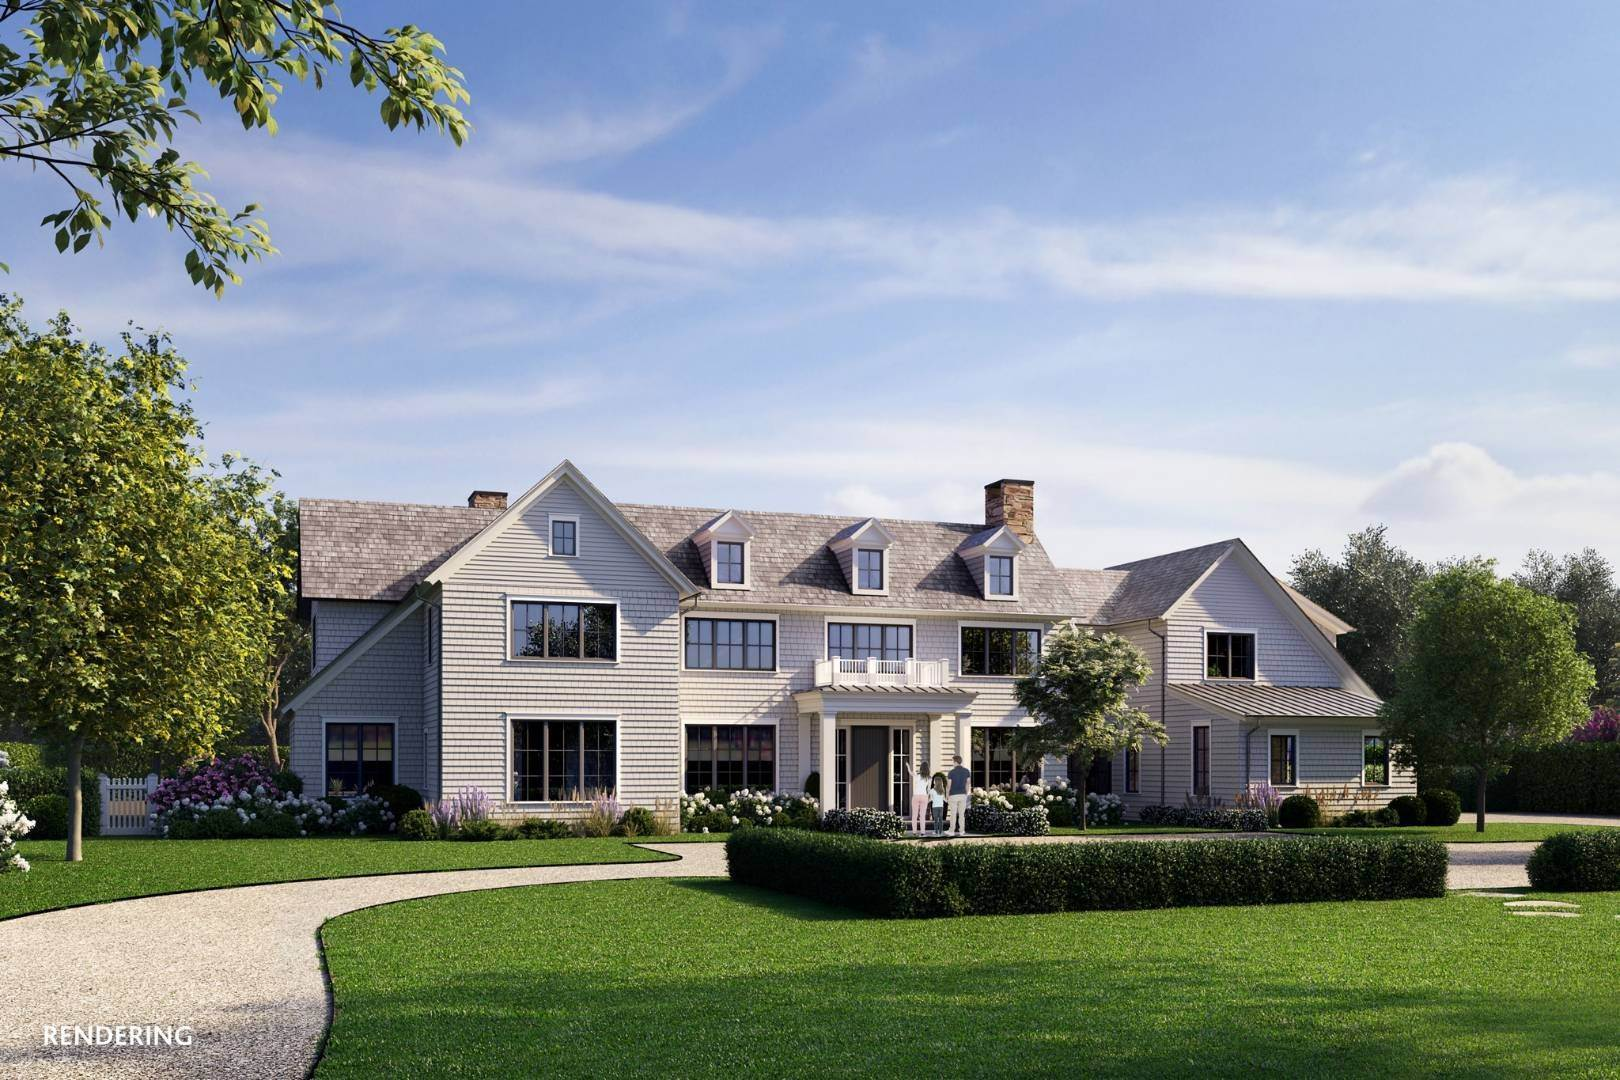 Single Family Home for Sale at Spectacular And New Private Estate By Michael Davis 102 Highland Terrace, Bridgehampton, NY 11968